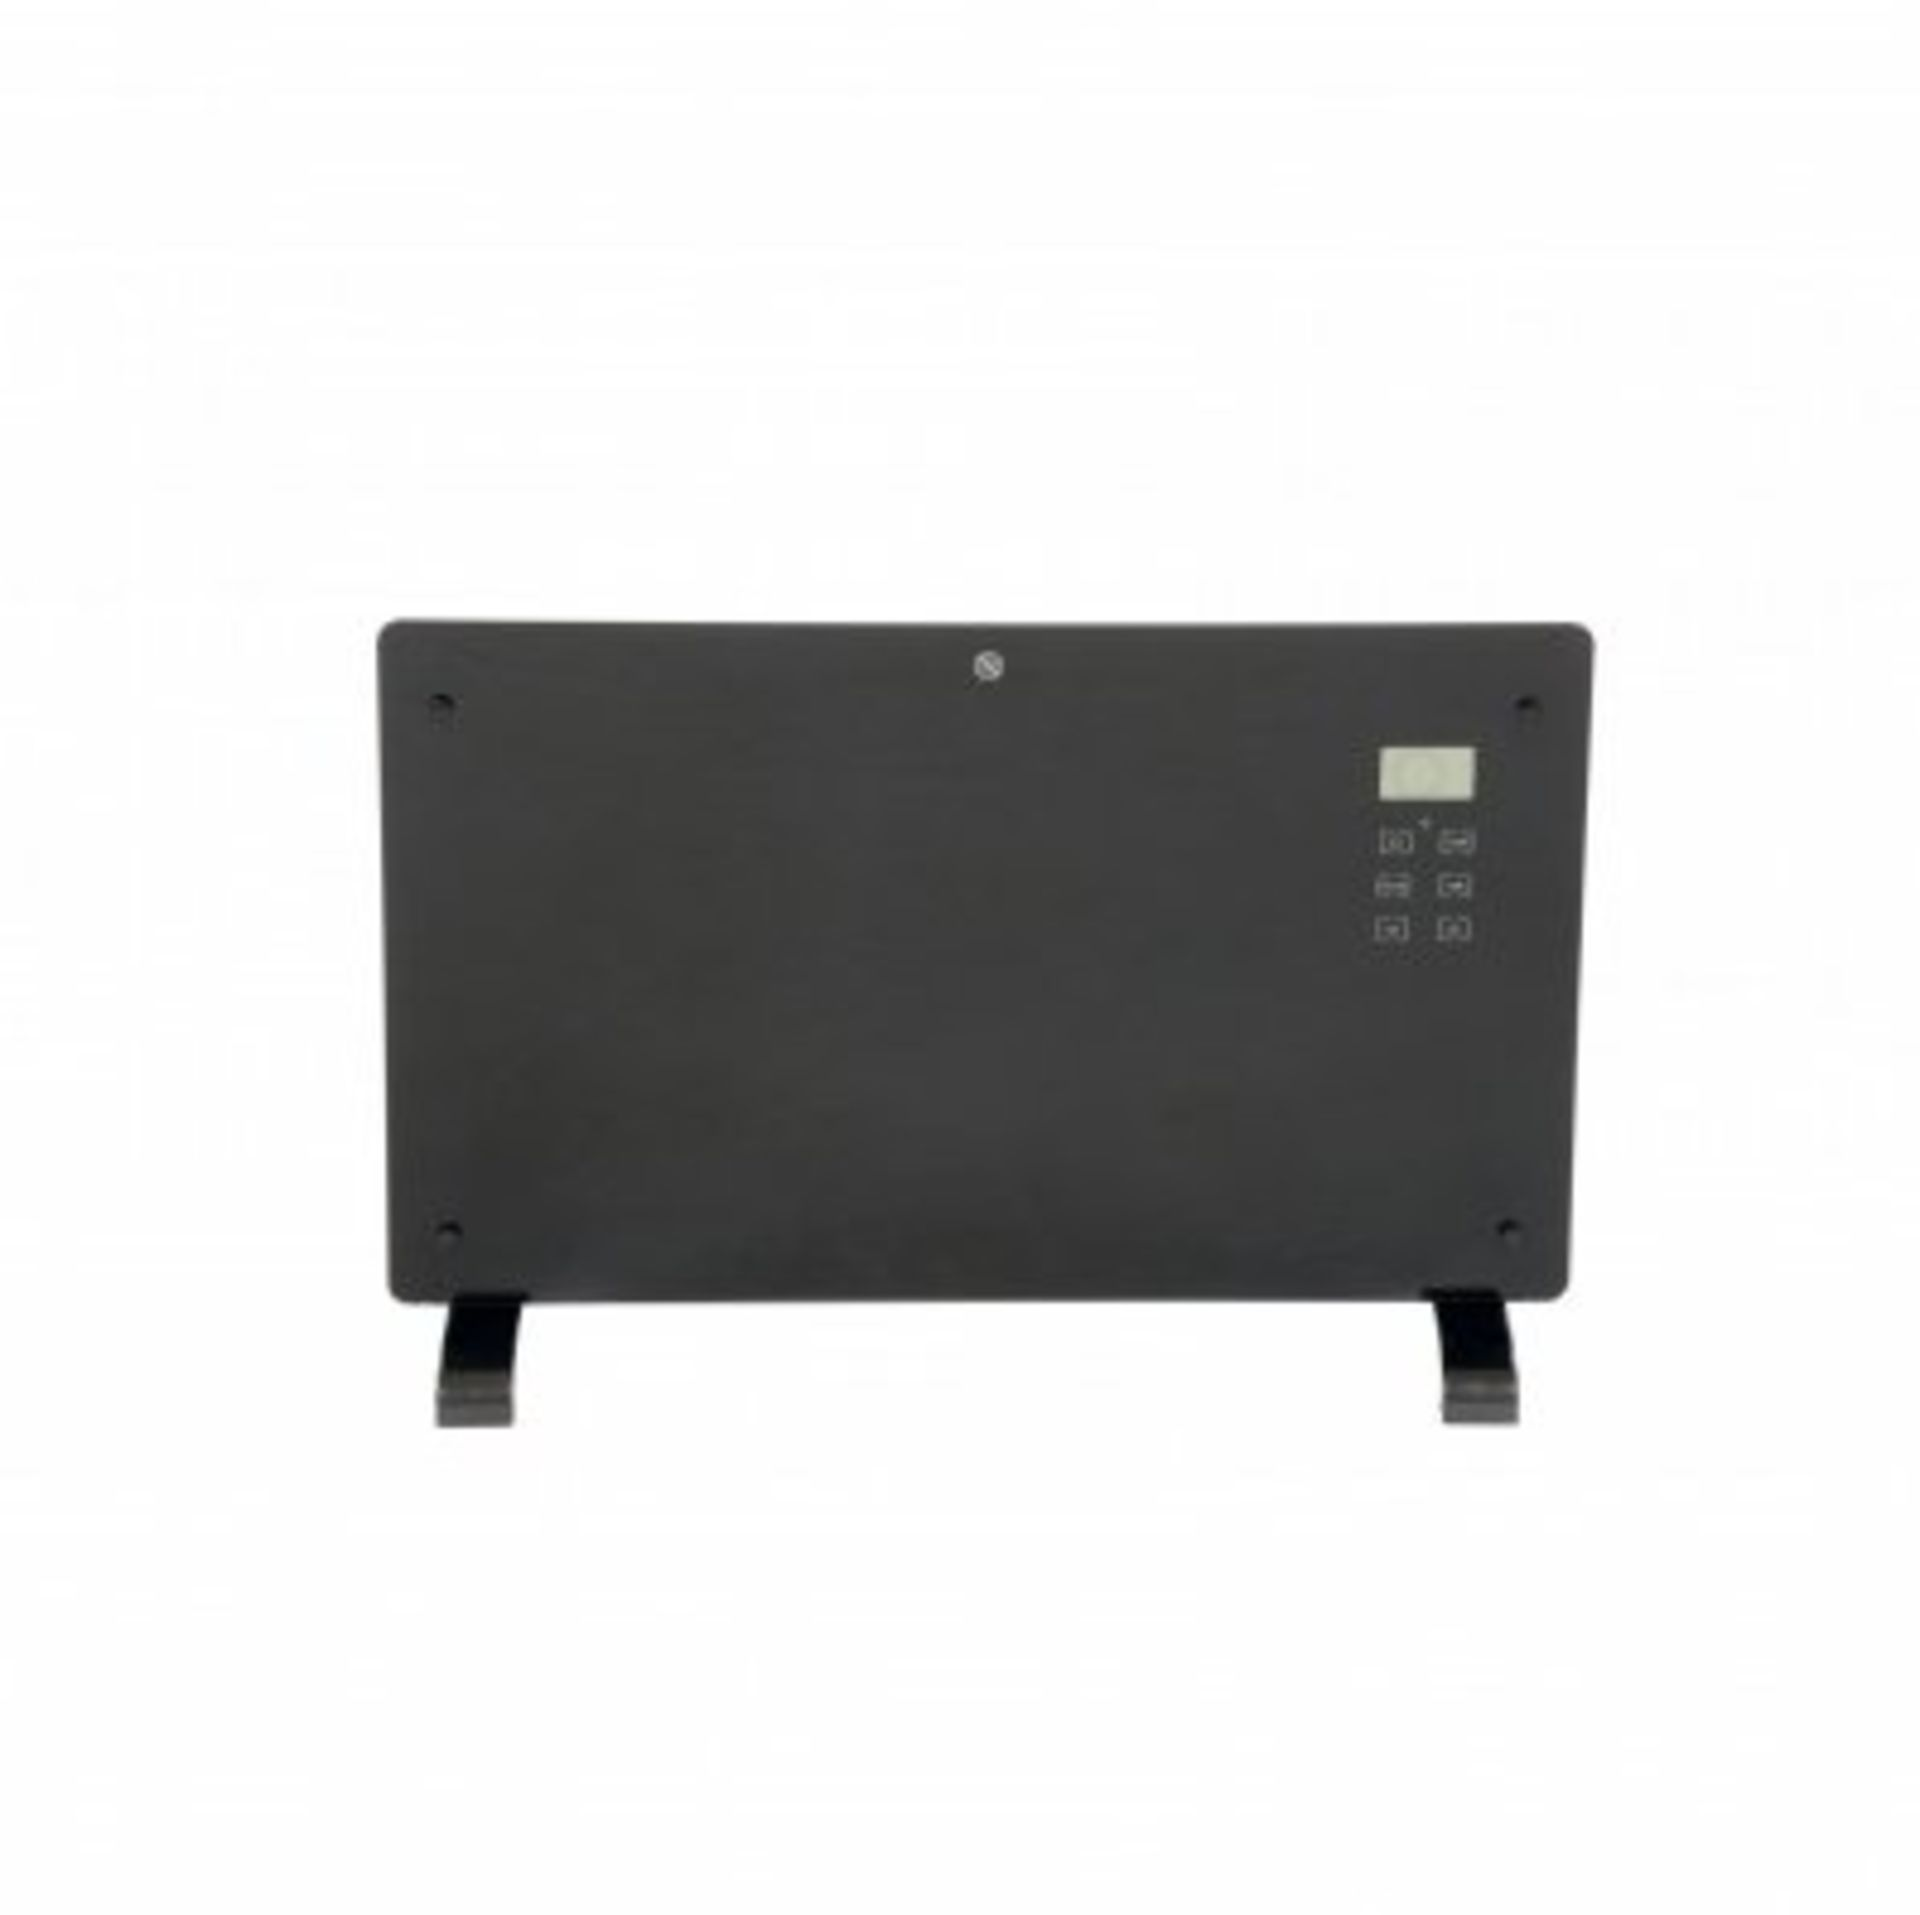 Lot 26 - (RU19) 2000W Black Glass Free Standing Electric Panel Convector Heater Add some class and so...